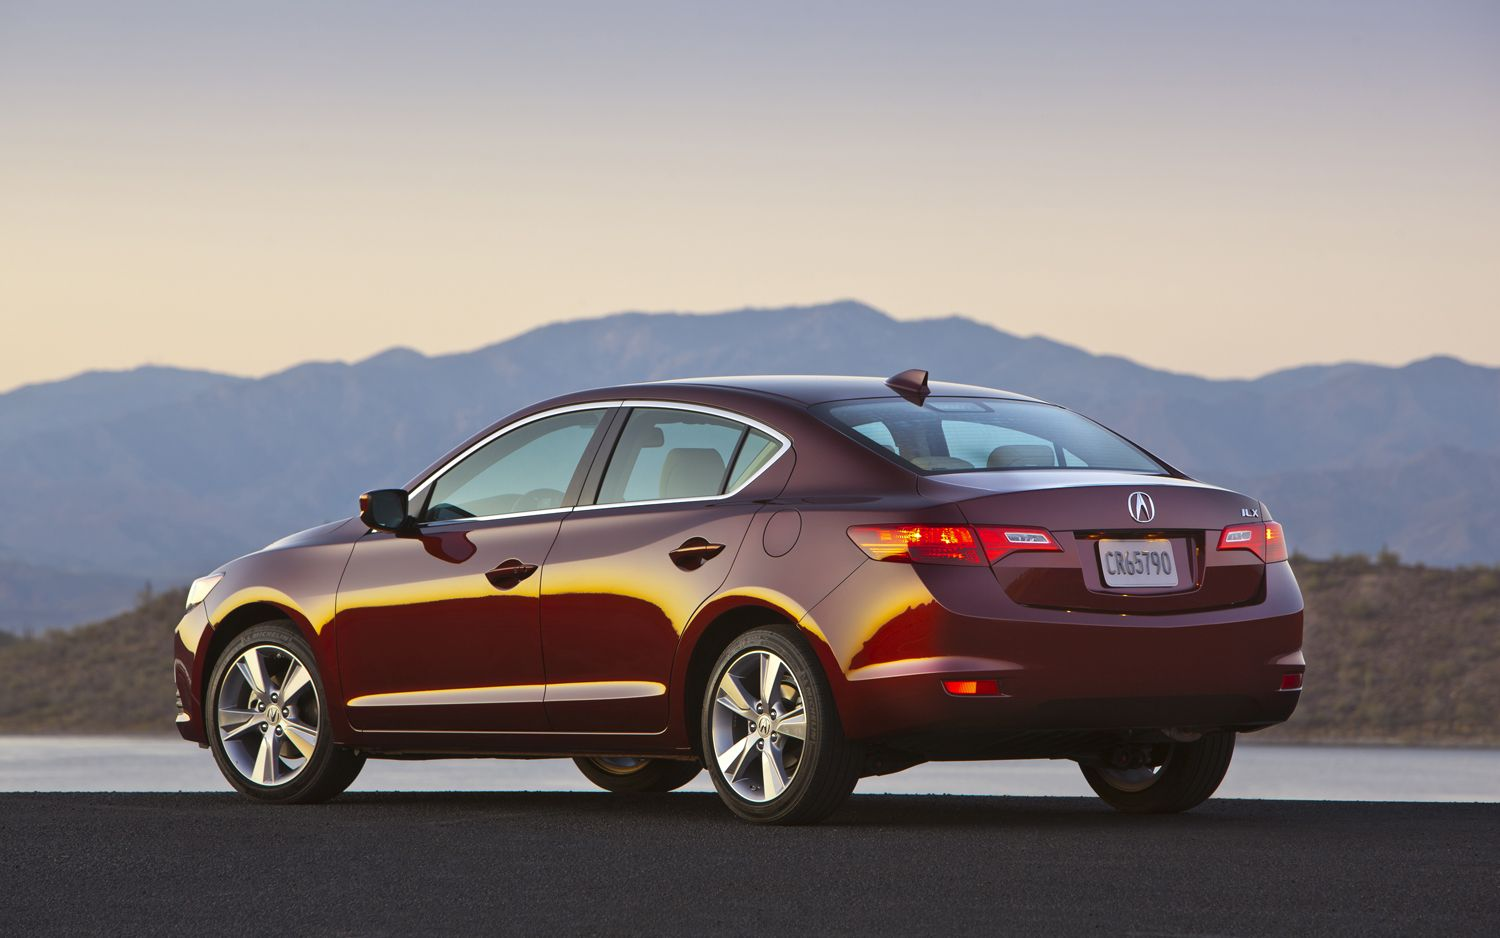 First Drive: 2013 Acura ILX